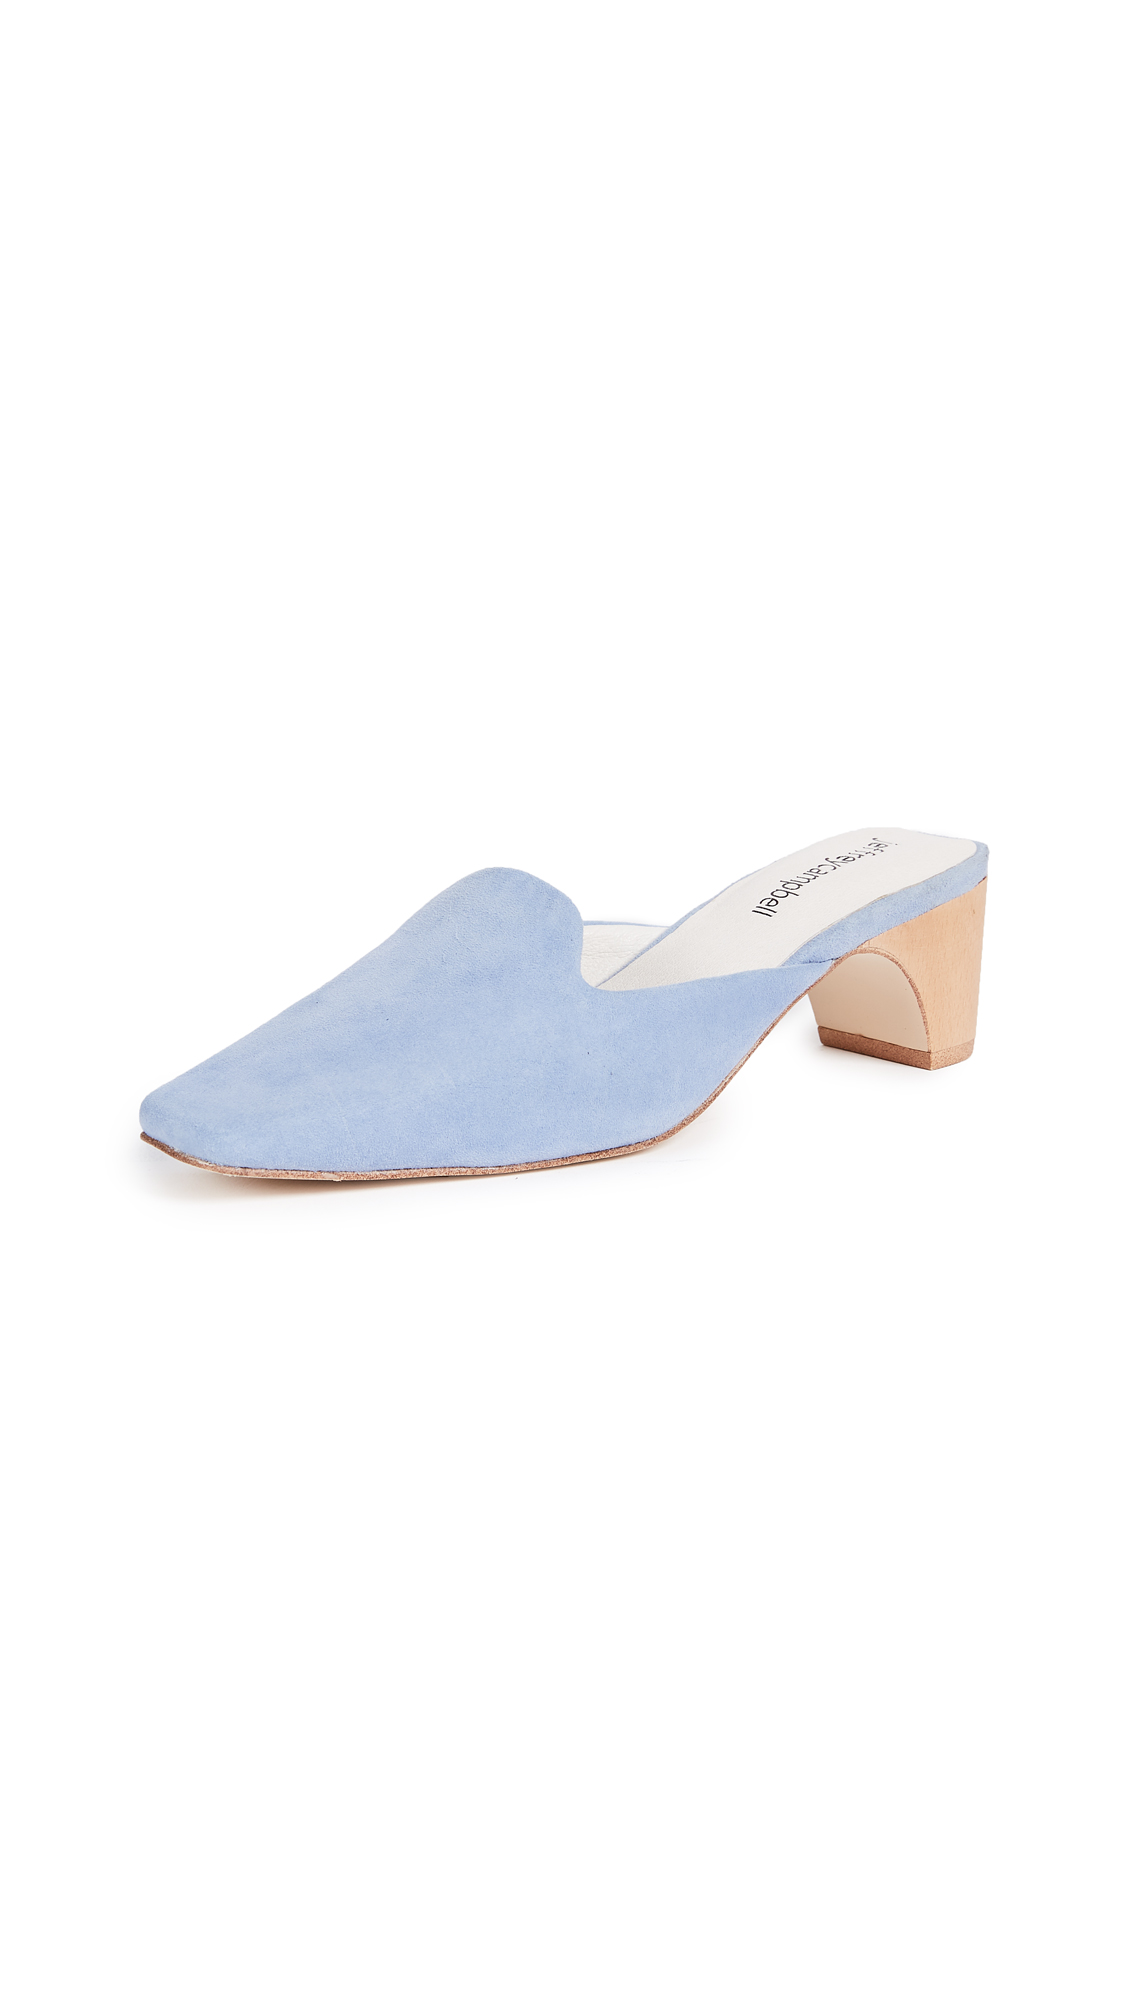 Jeffrey Campbell Jenae Mules - Light Blue